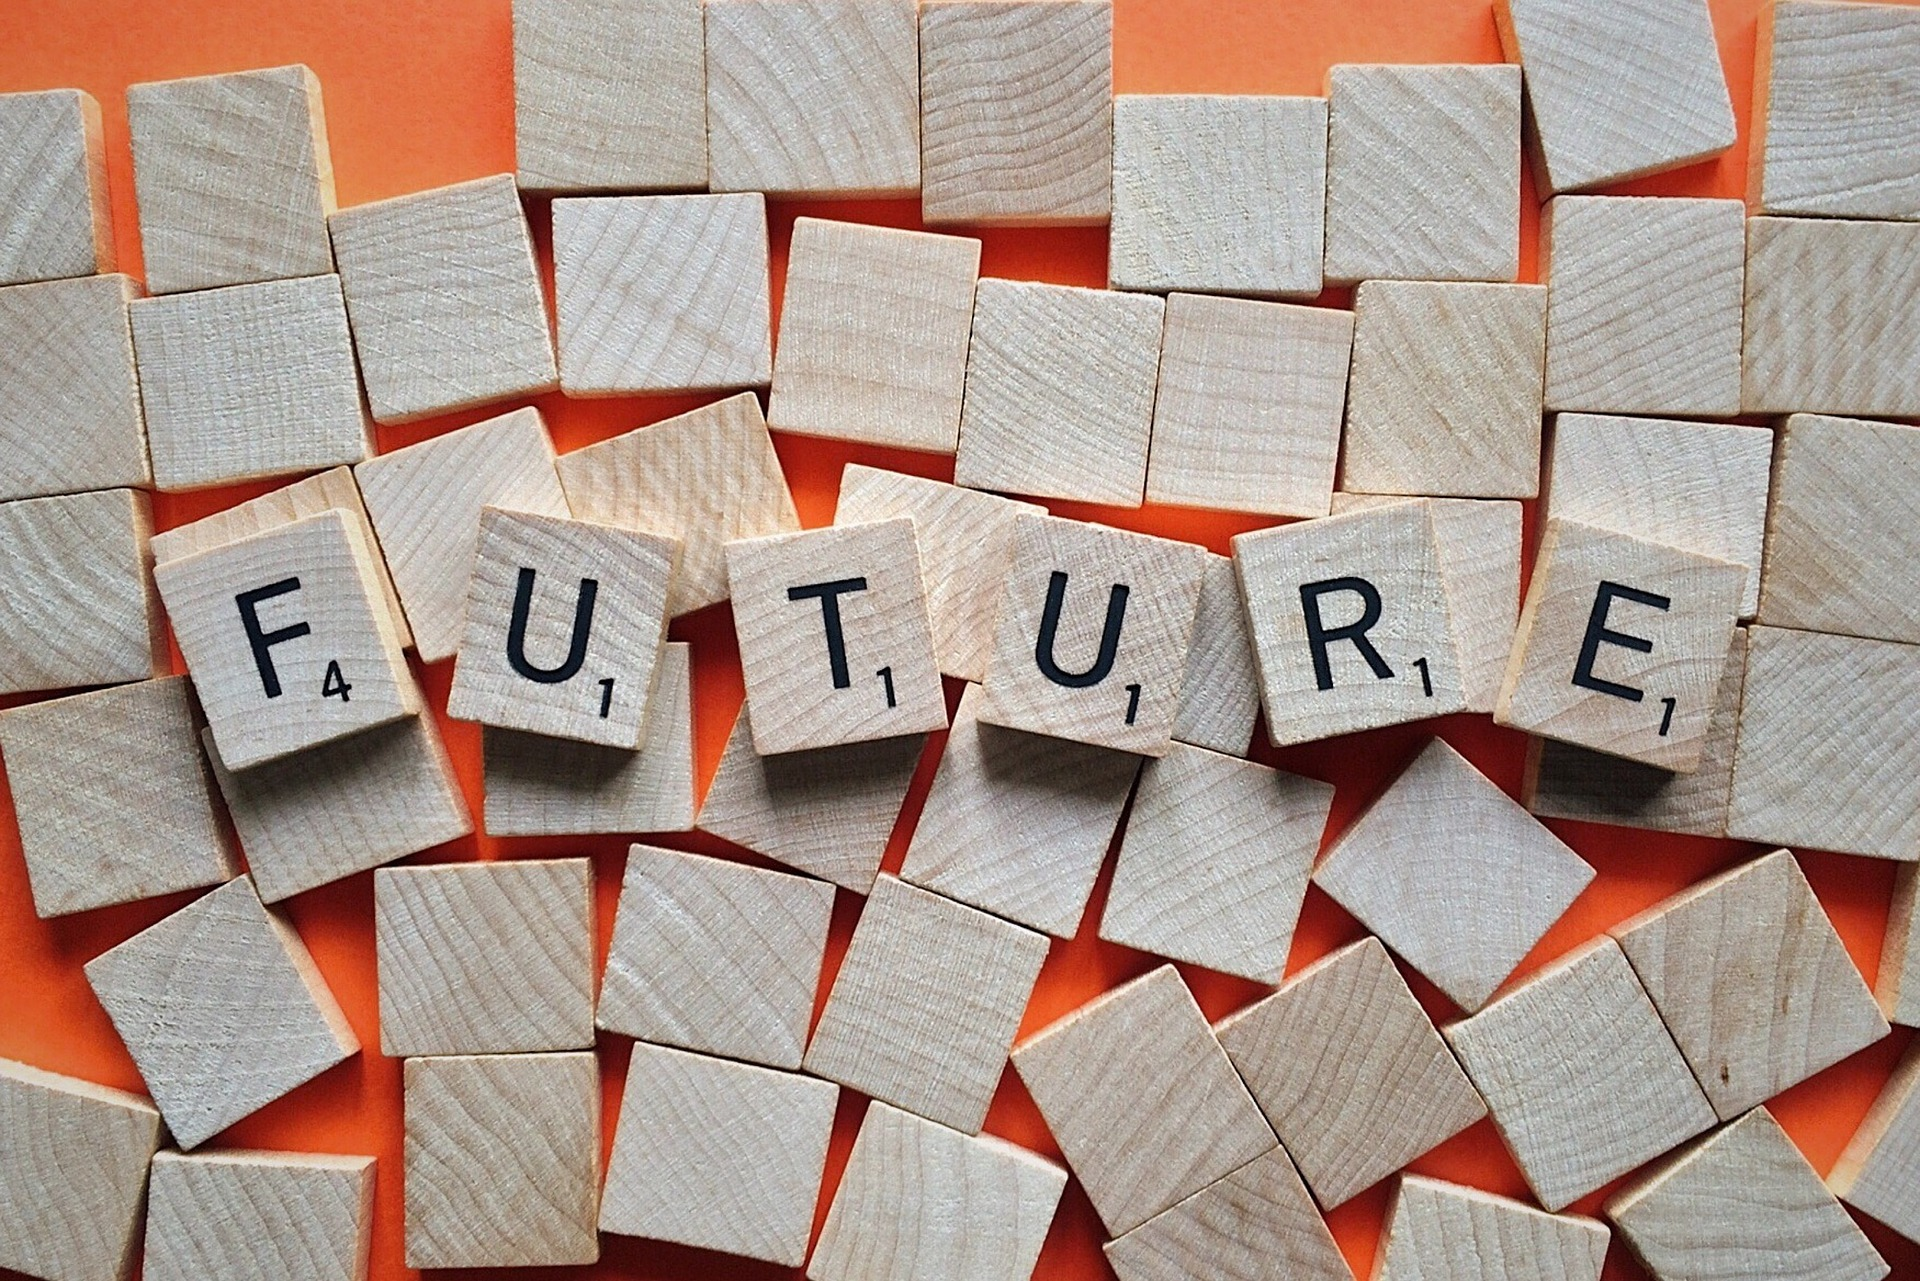 PR's Future: What Will The Next 10 Years Bring?